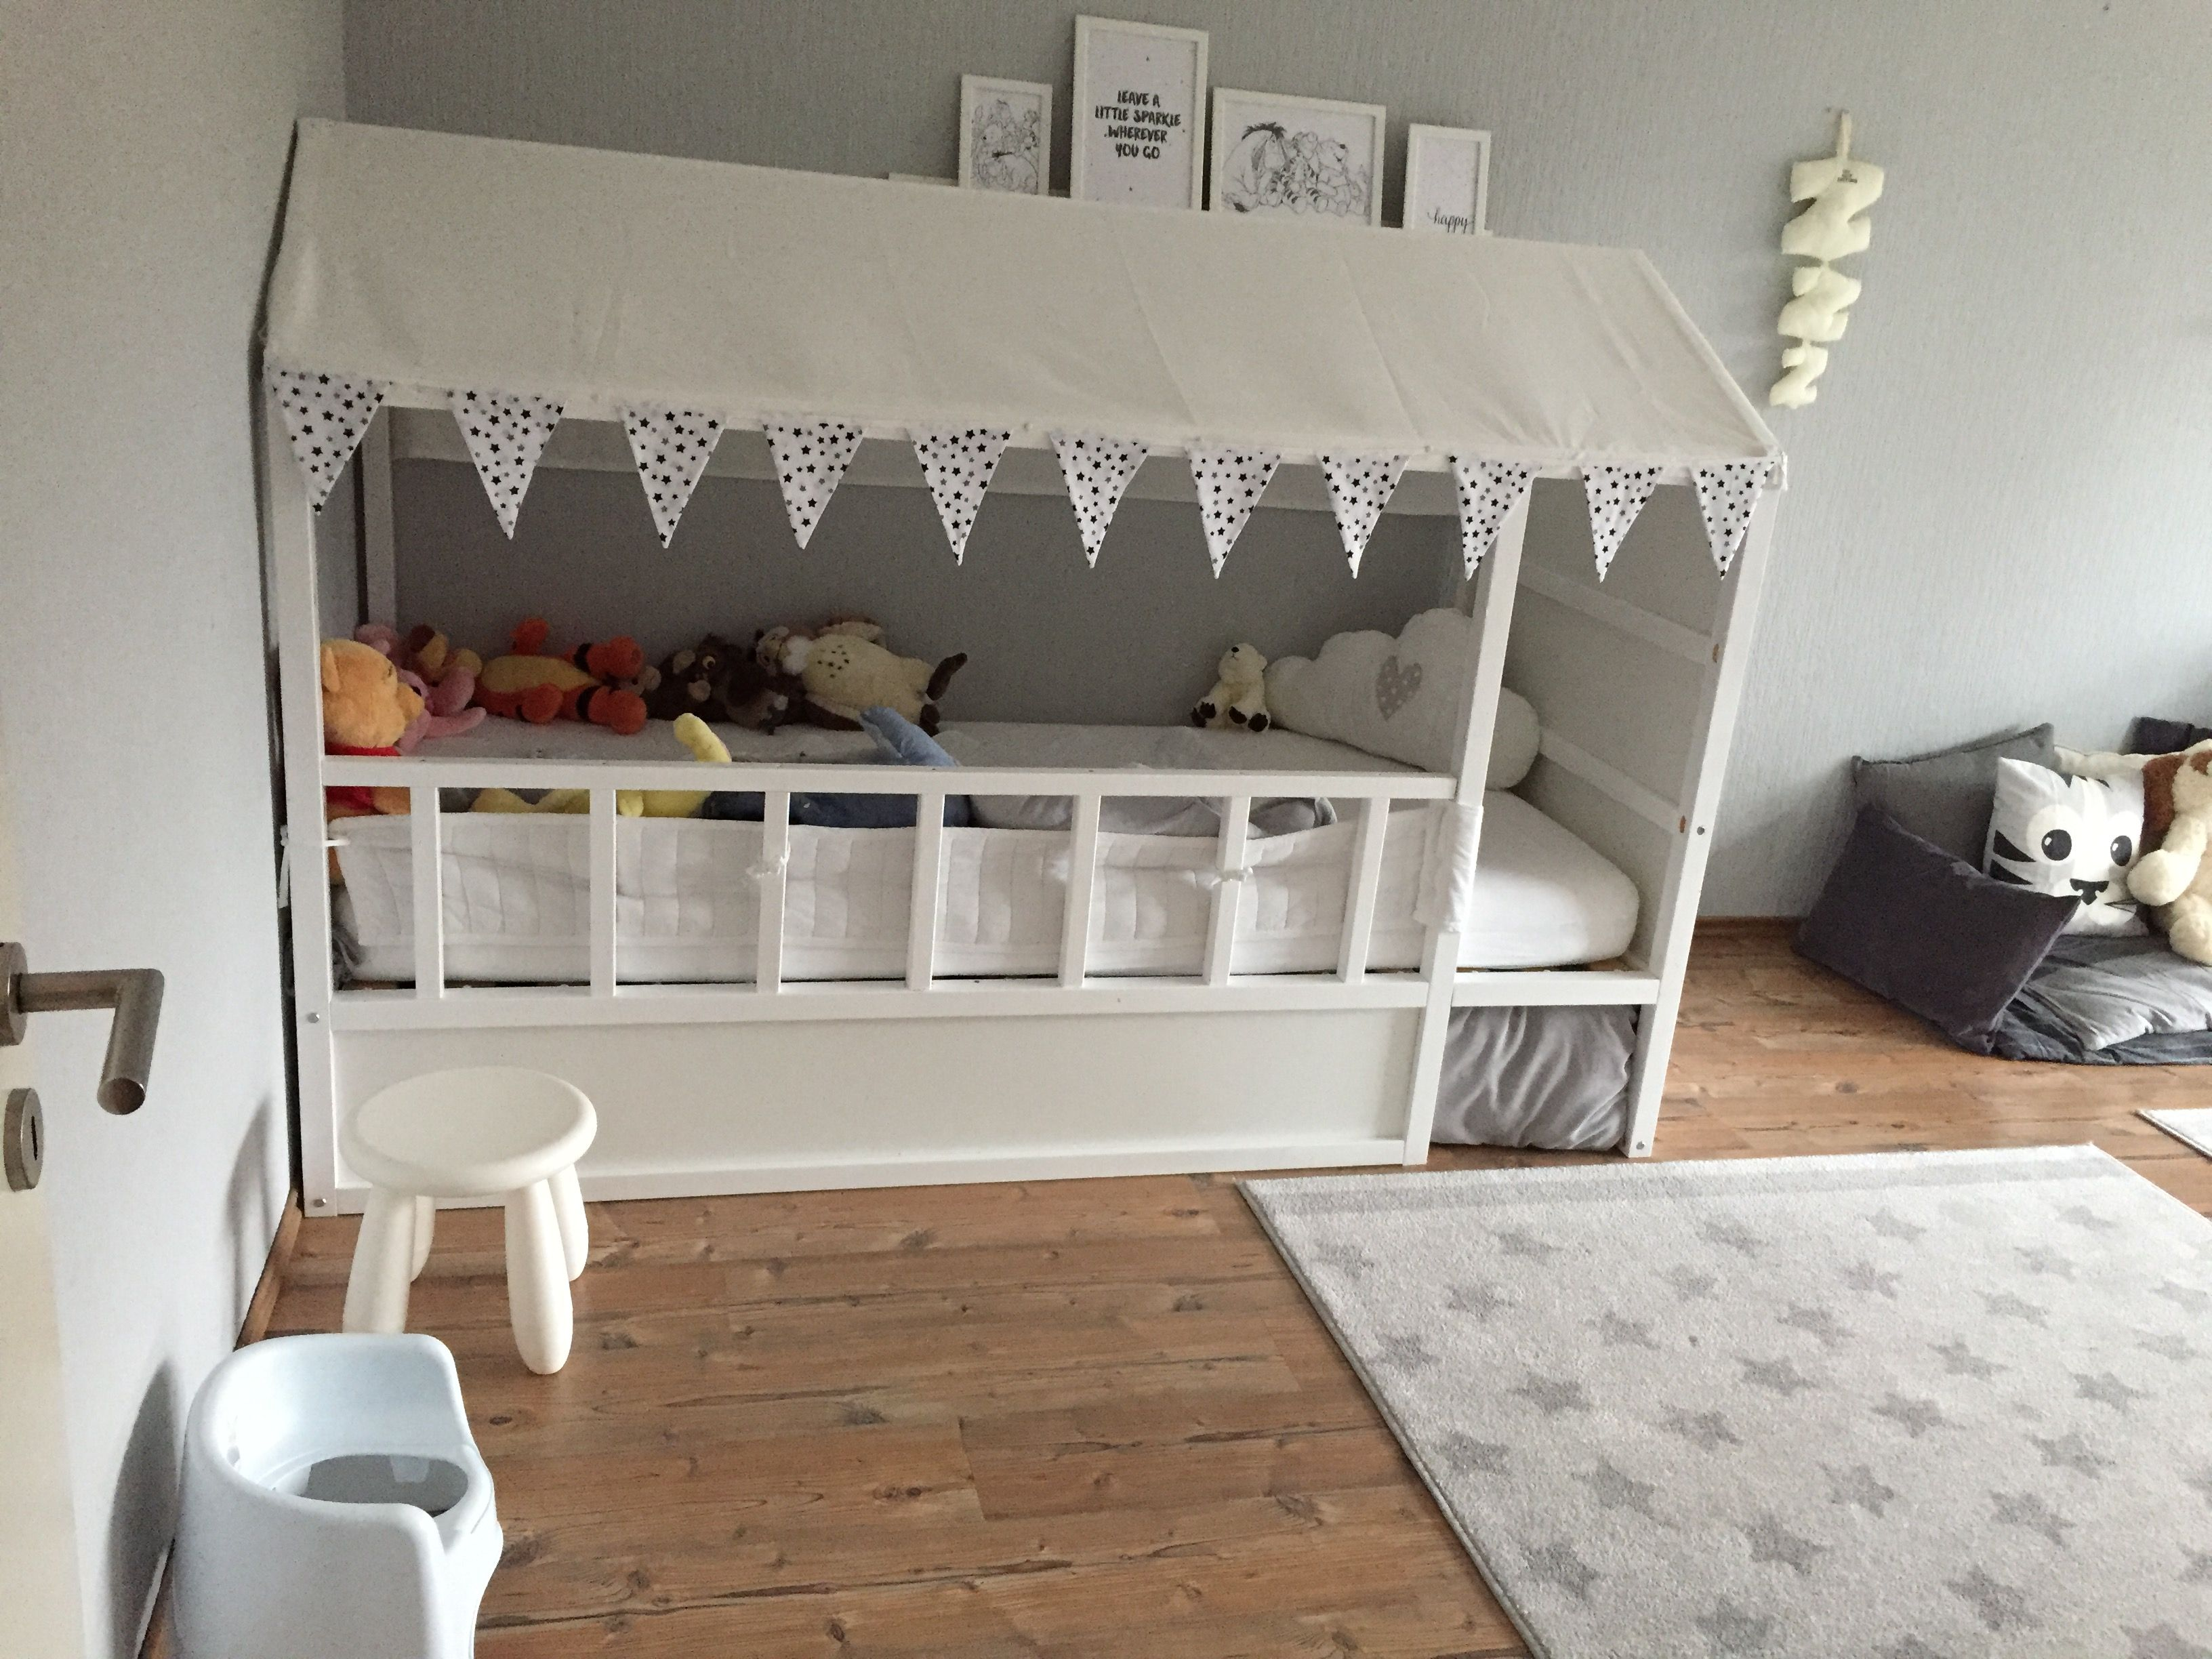 Ikea kura hack diy pinterest kinderzimmer for Kinderzimmer hacks